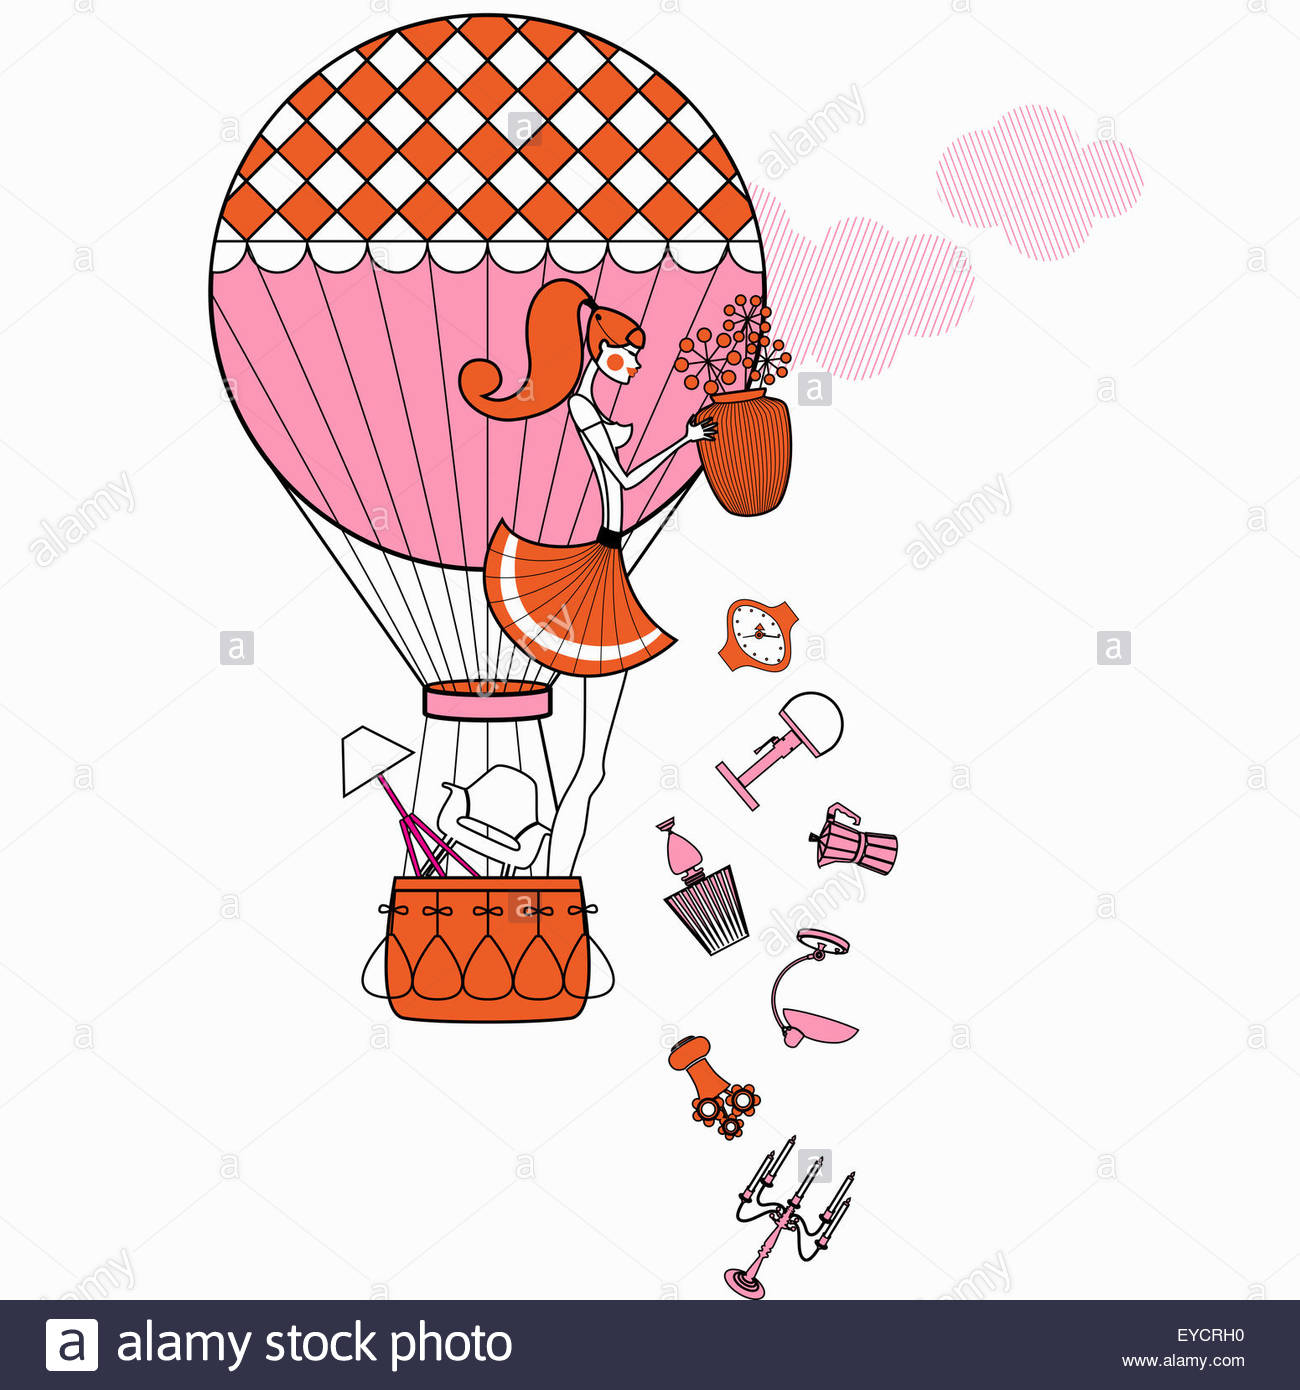 Fashionable woman in hot air balloon throwing away furniture and accessories - Stock Image